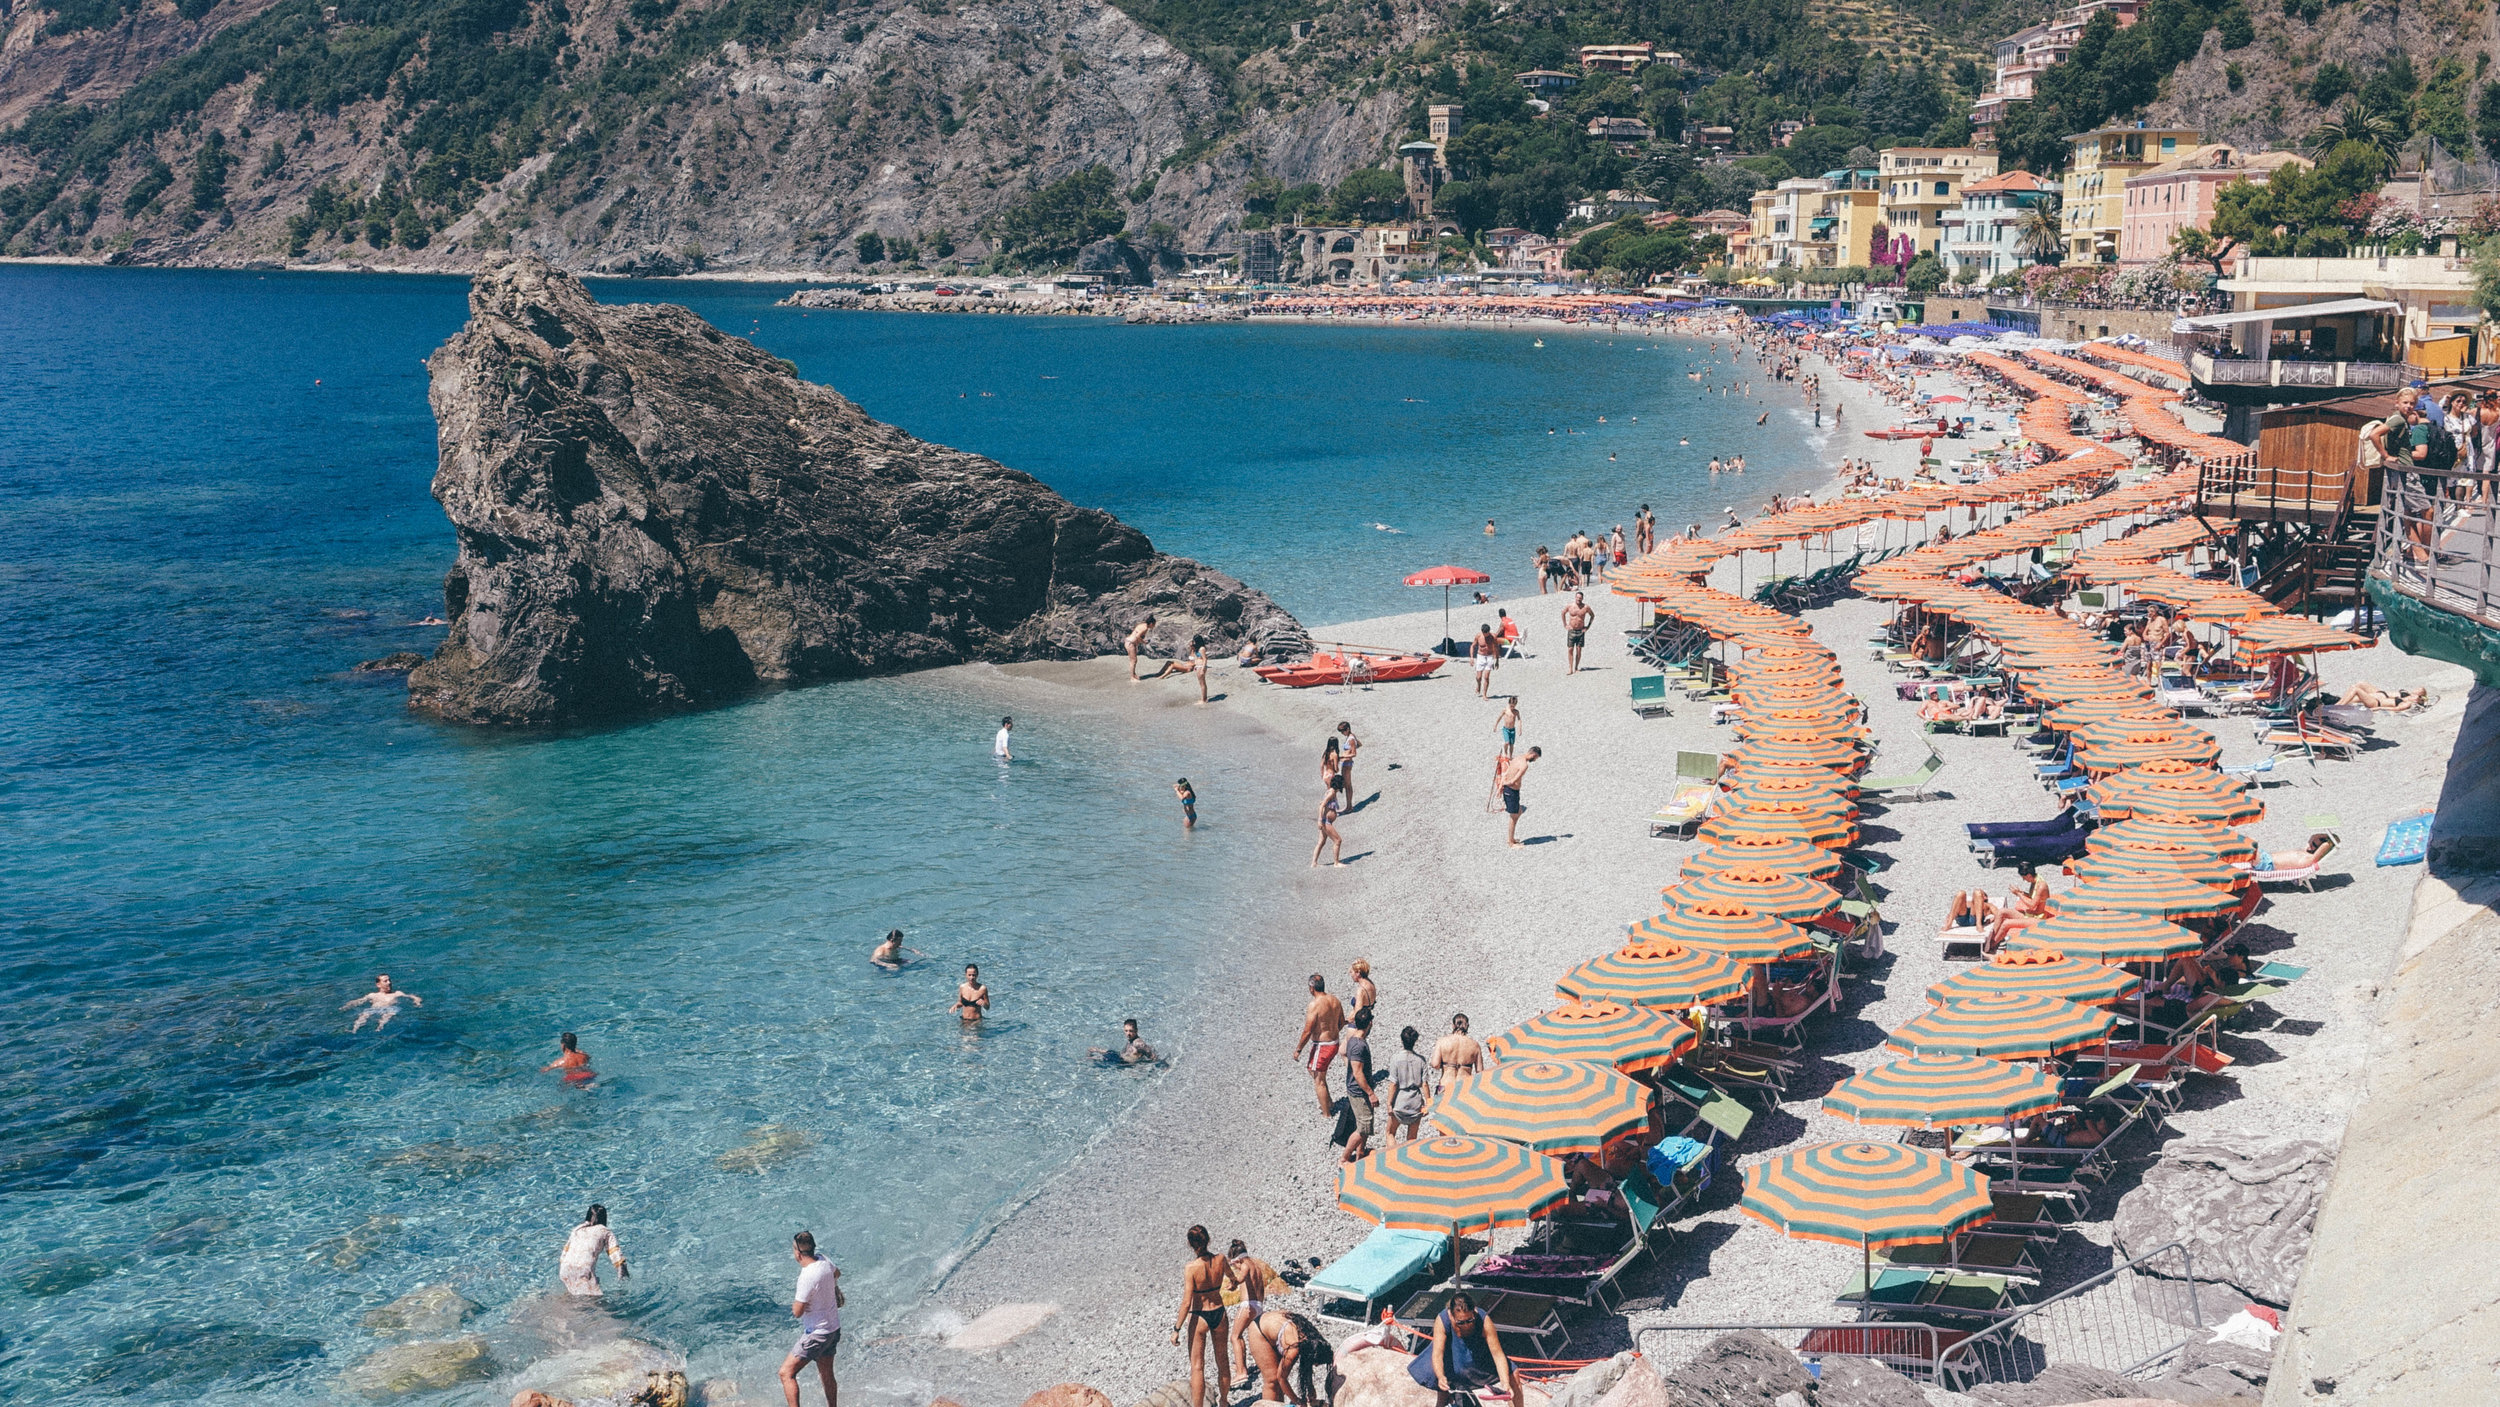 Monterosso al Mare. The perfect place to end any heist + make grand gestures.